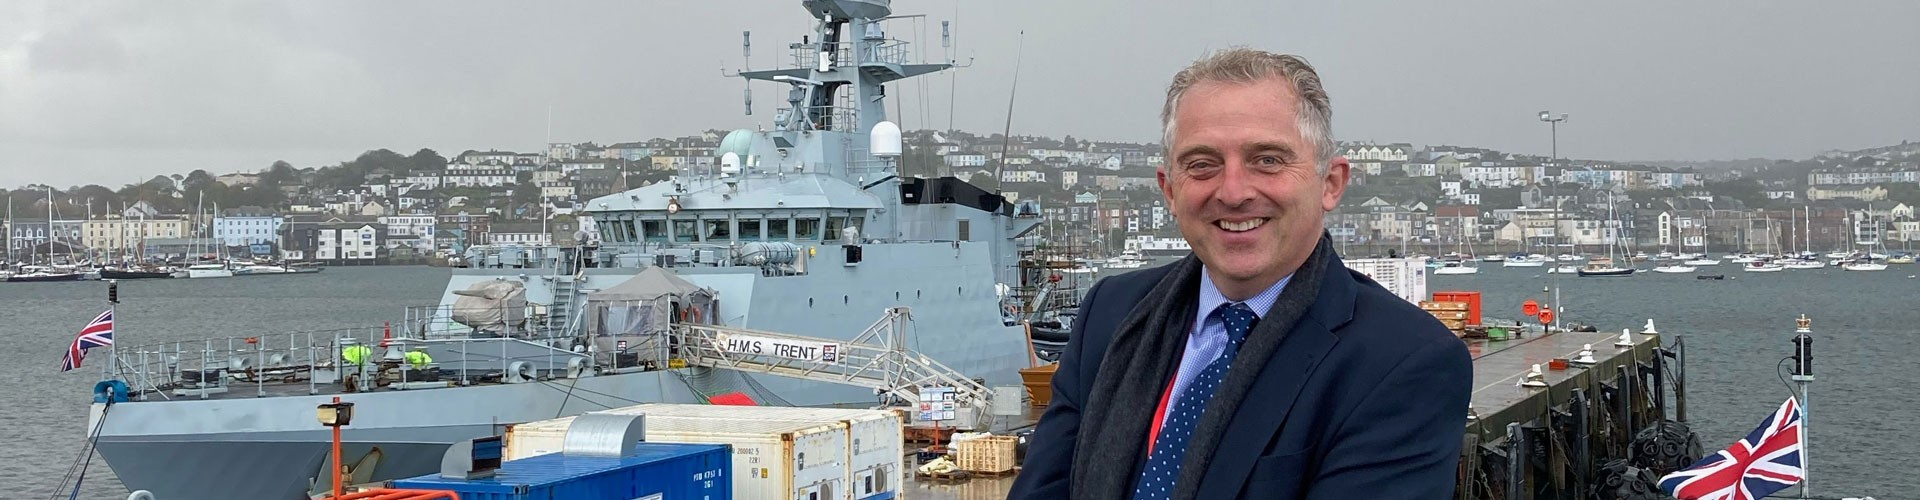 miles carden in front of navy ship in Falmouth